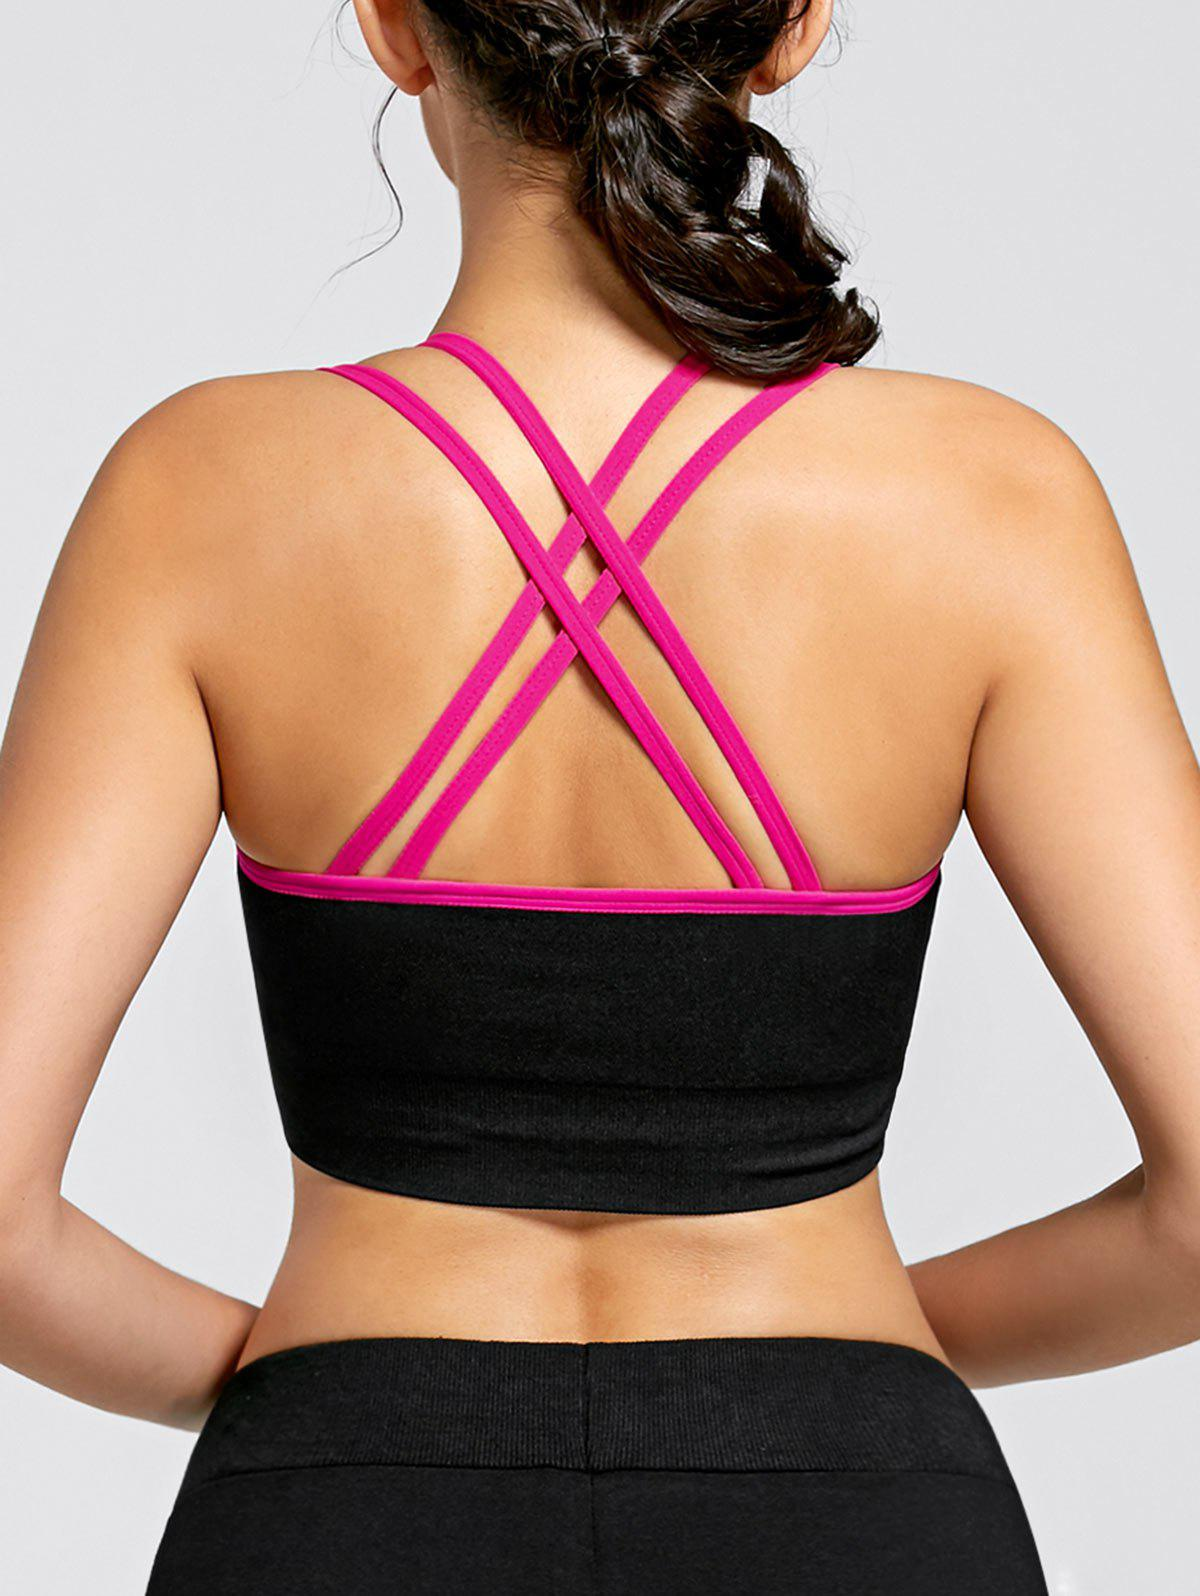 Padded Strappy Criss Cross Yoga Bra - TUTTI FRUTTI L